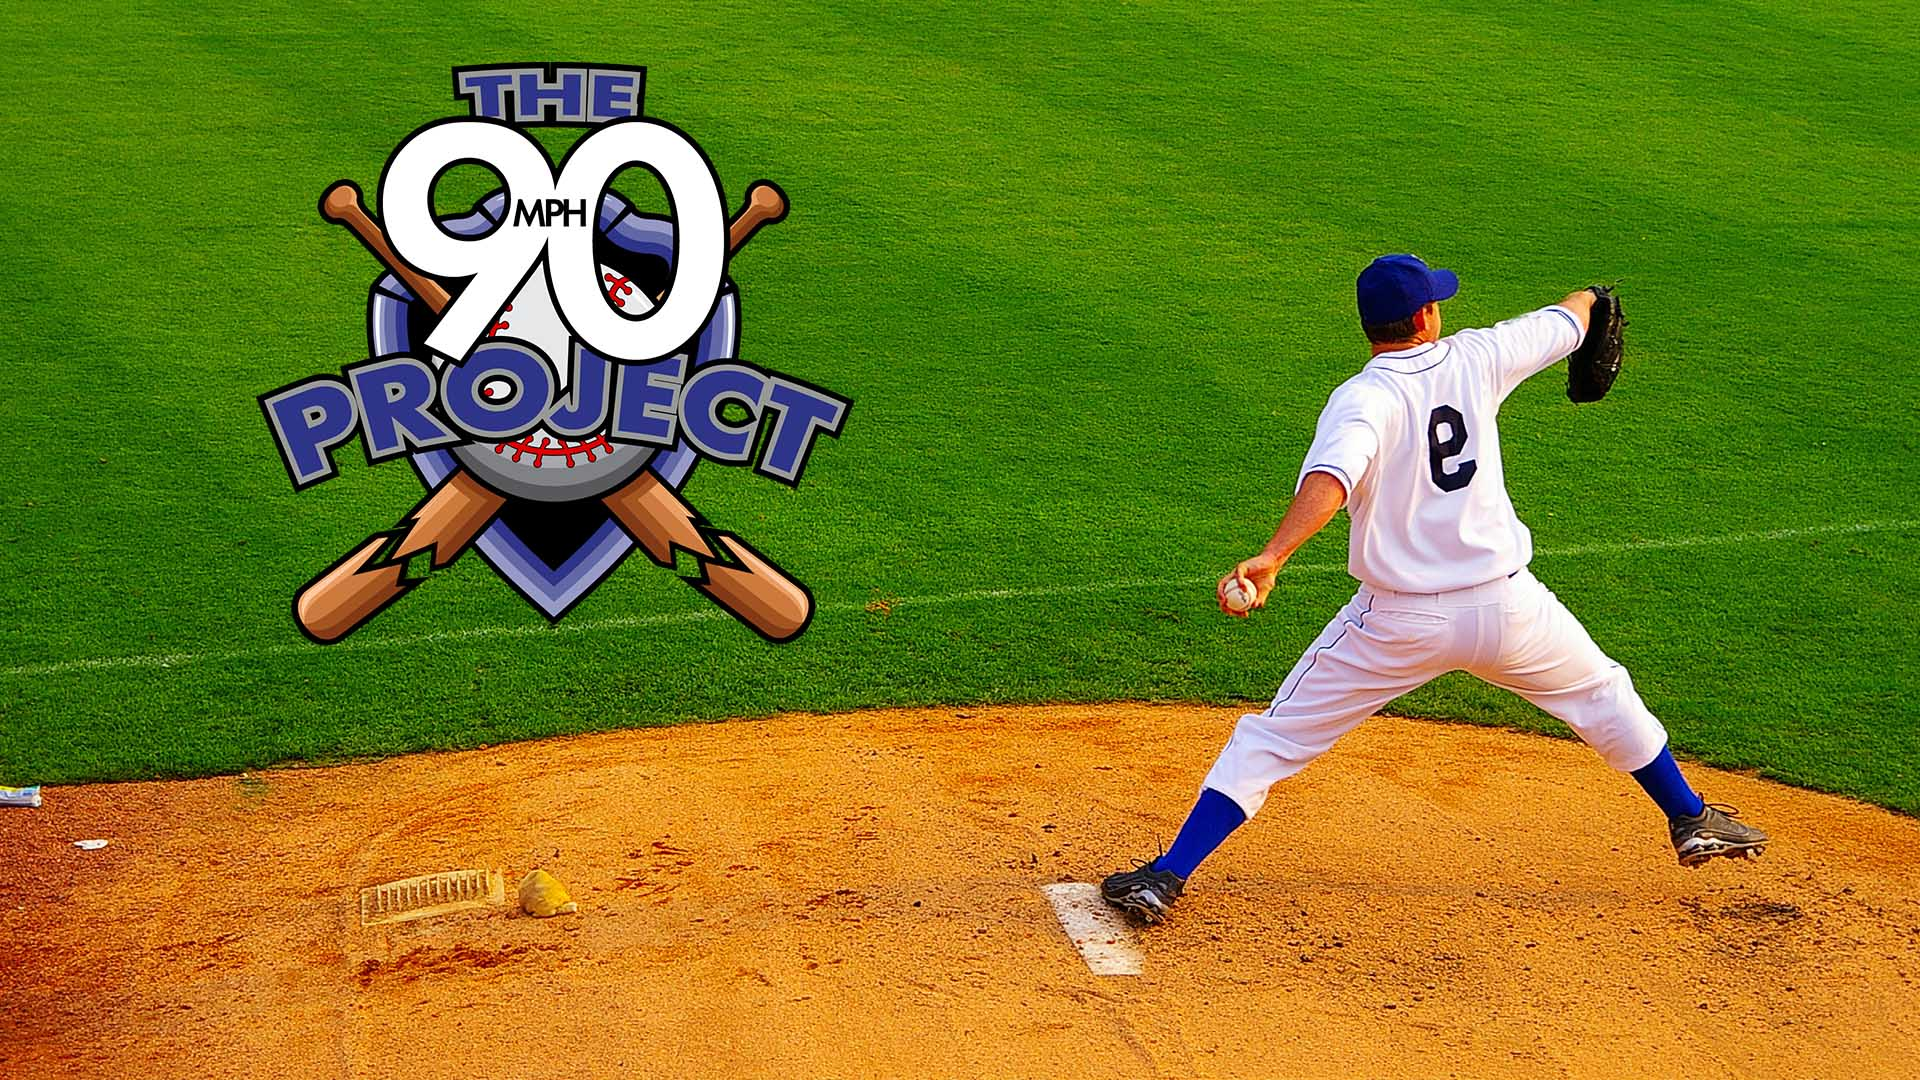 The 90 Project (2020-21)